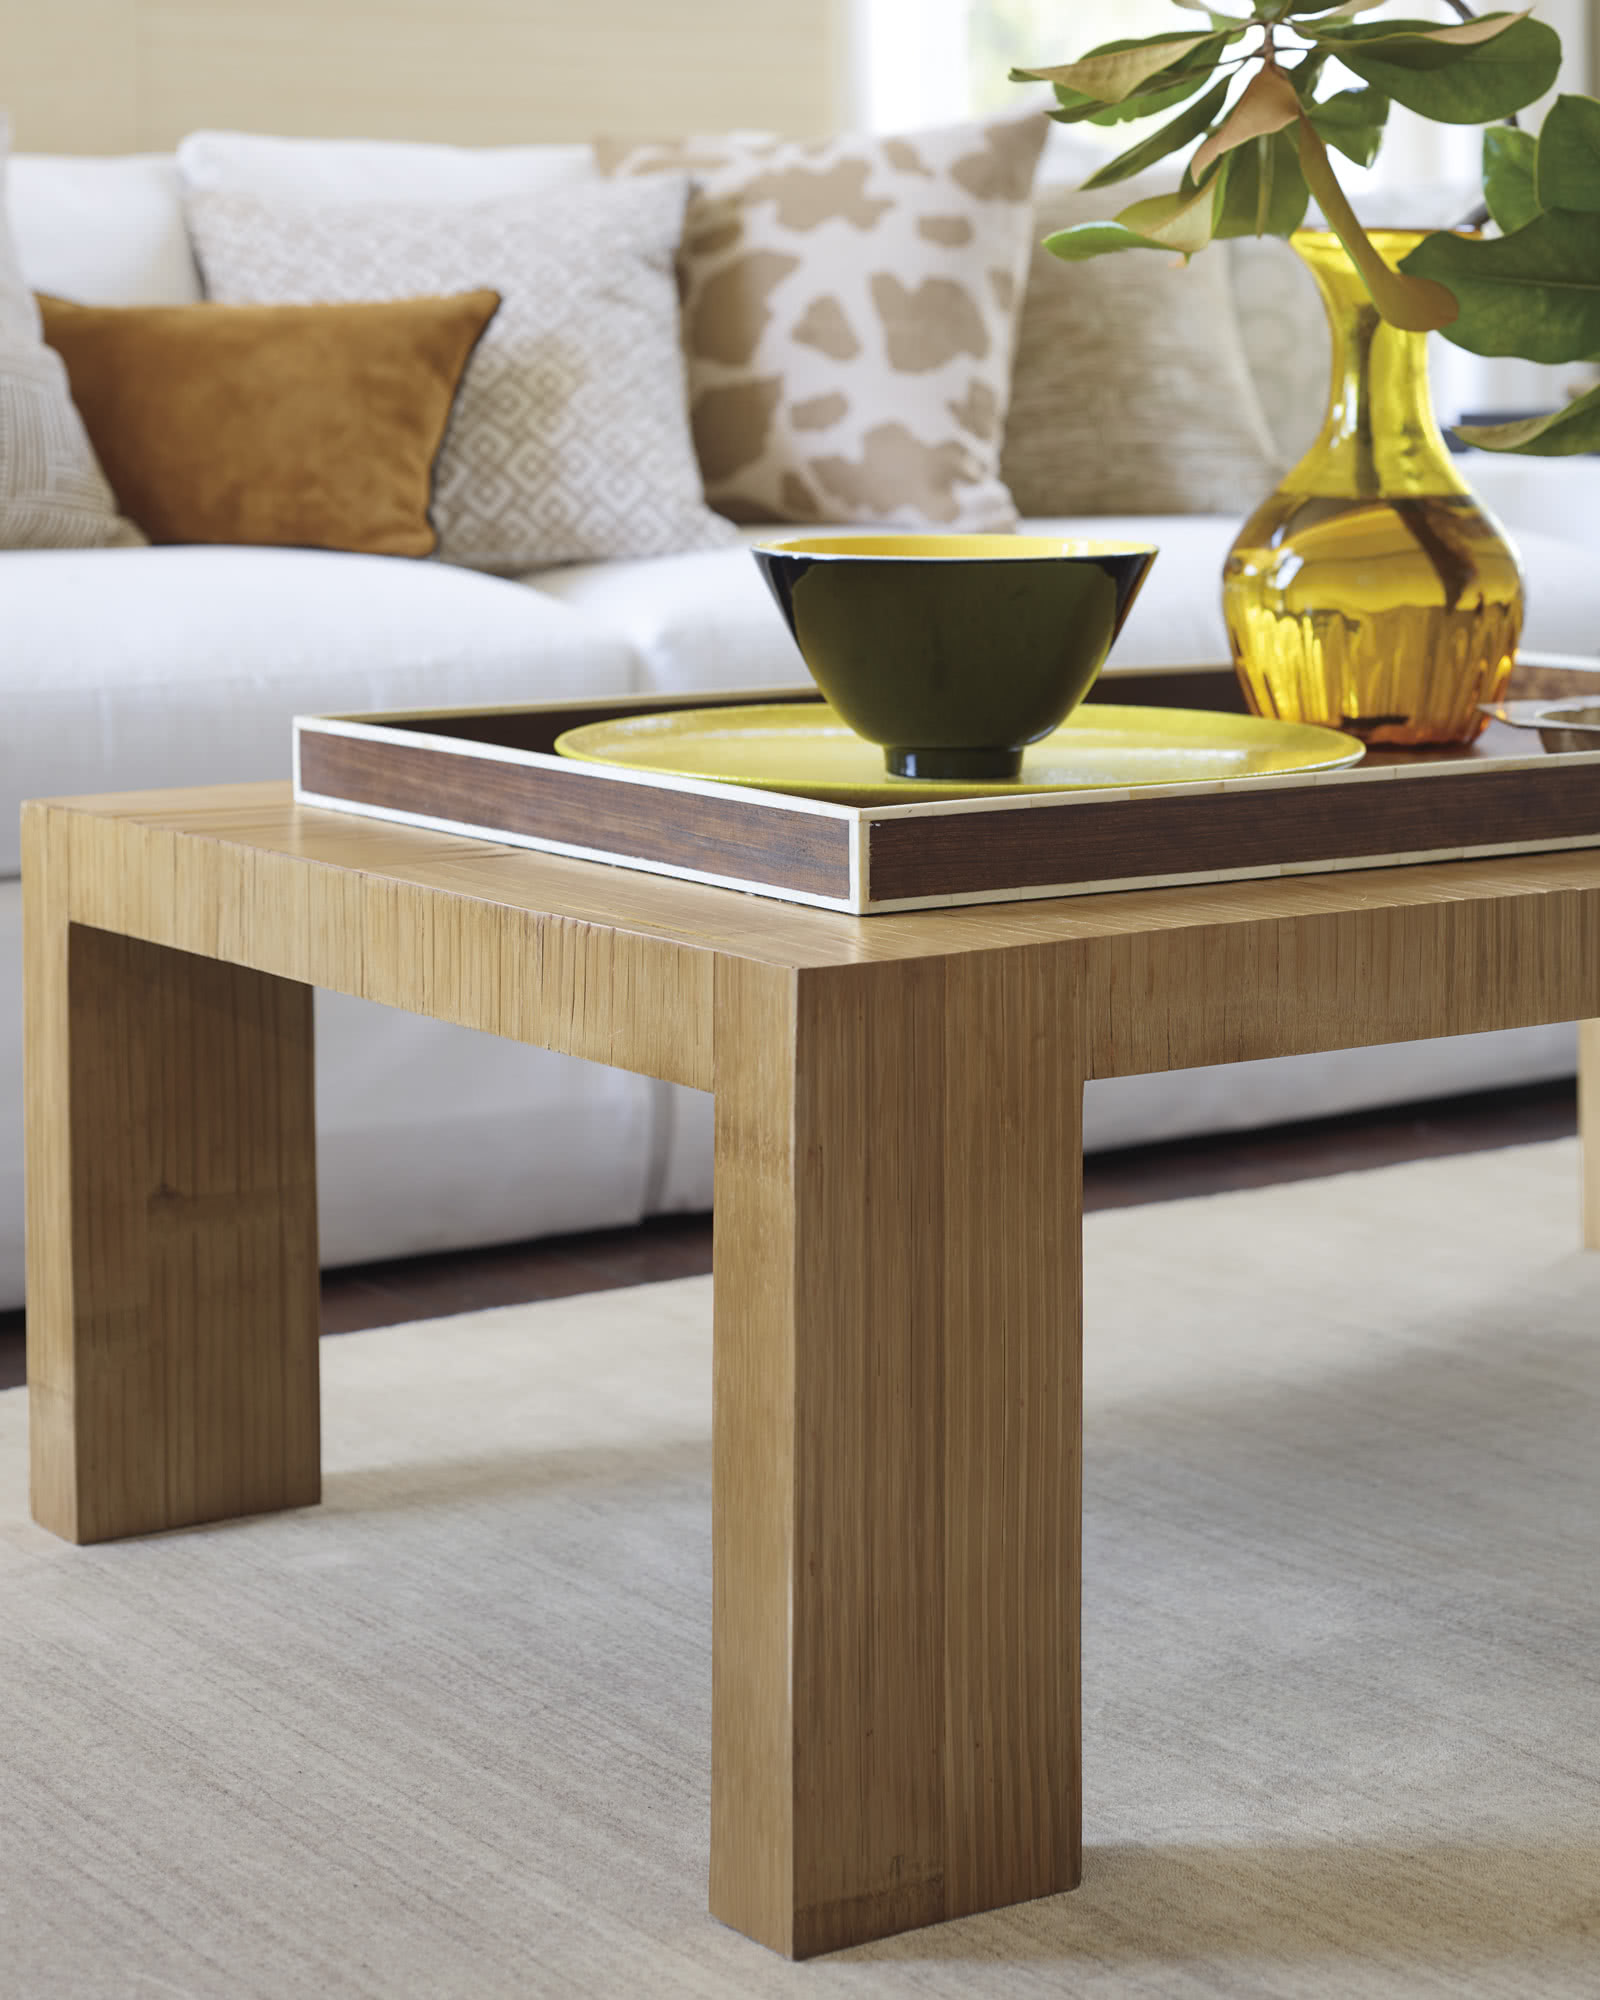 Crushed Bamboo Coffee Table Serena & Lily